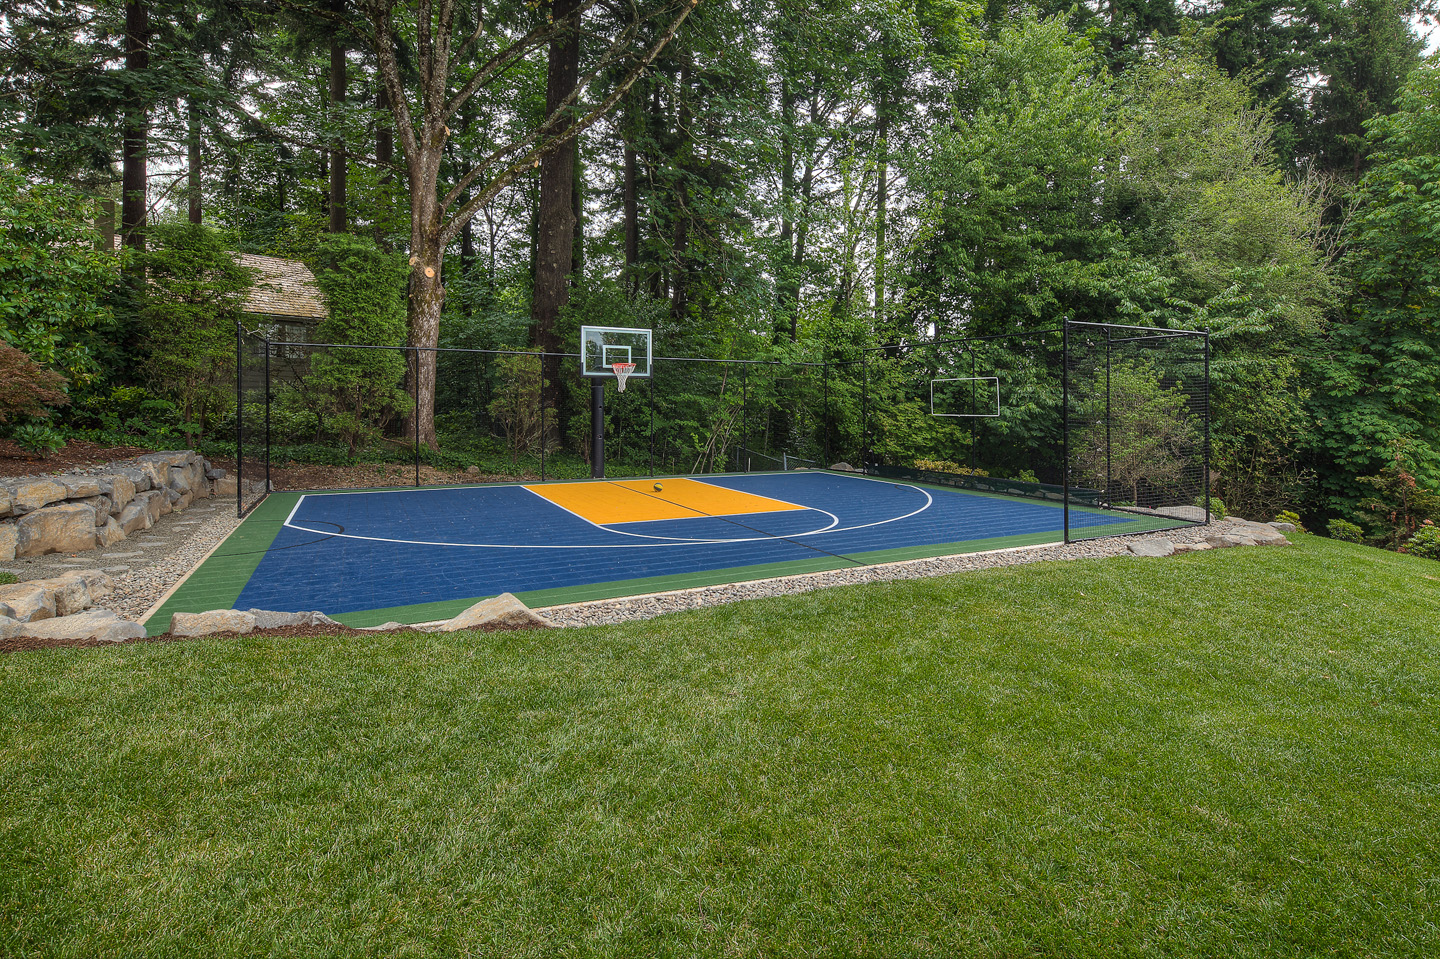 Basketball court in backyard